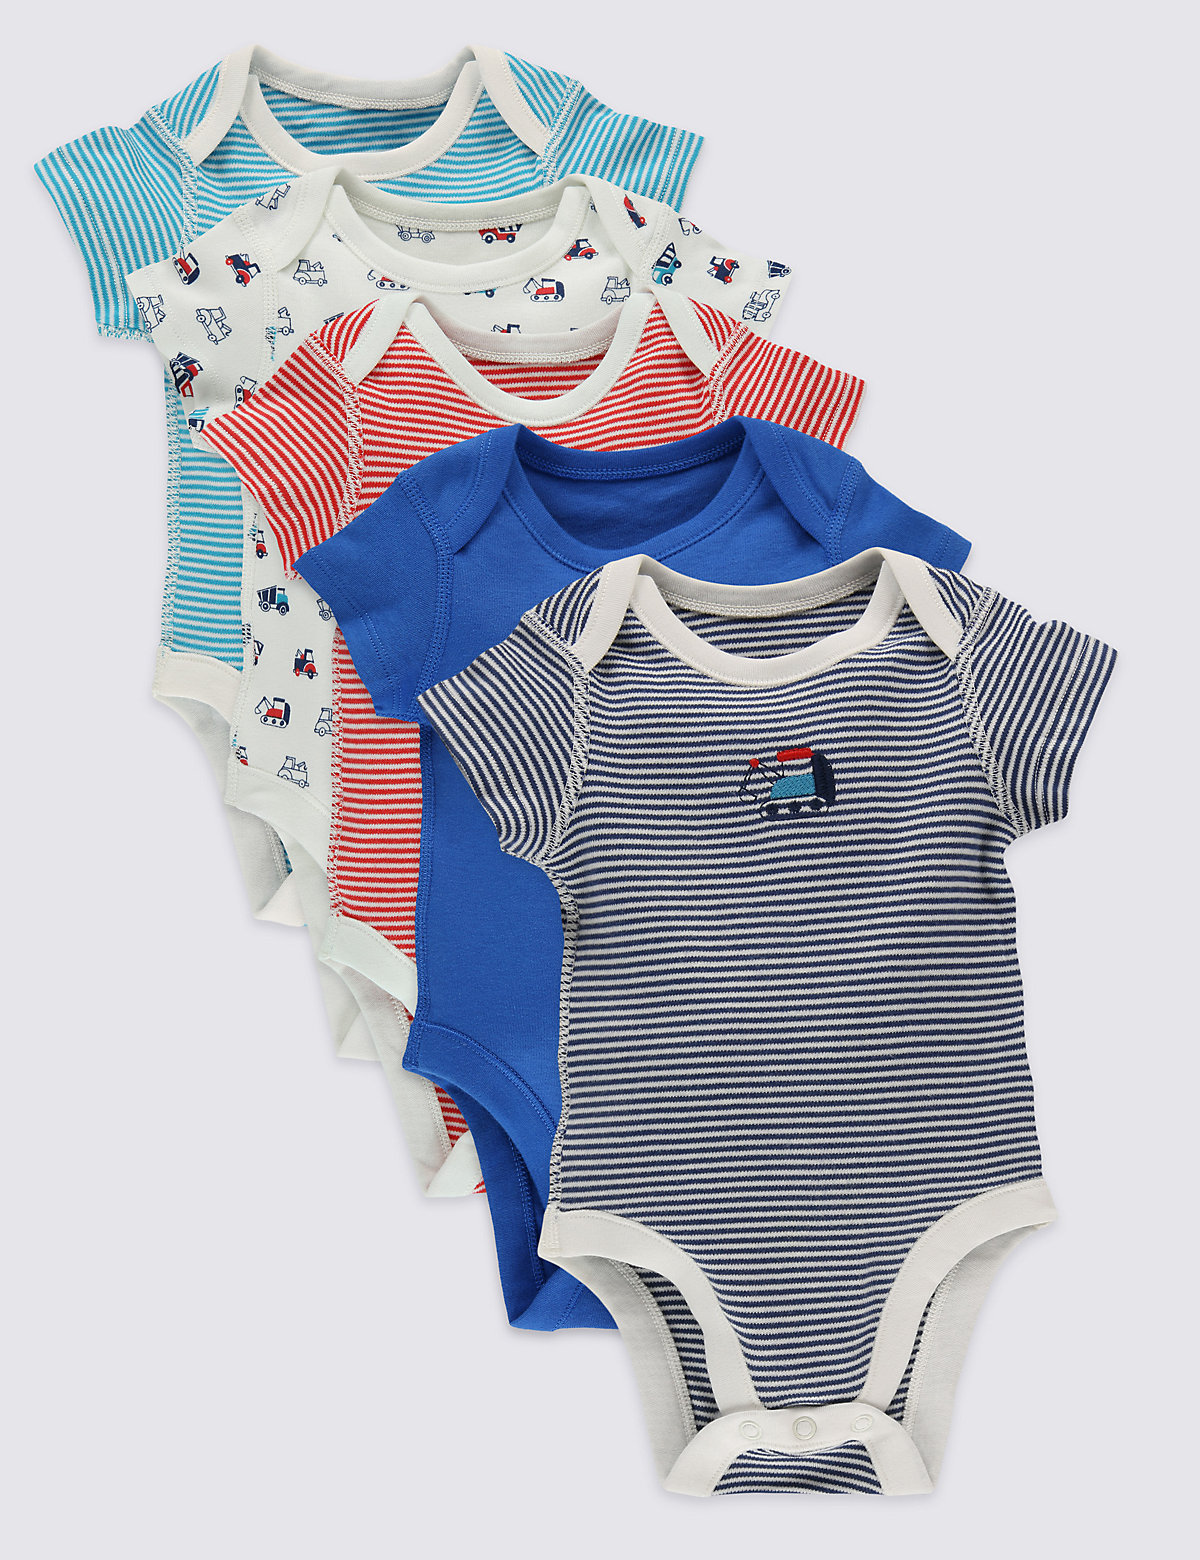 5 Pack Pure Cotton Baby Bodysuits